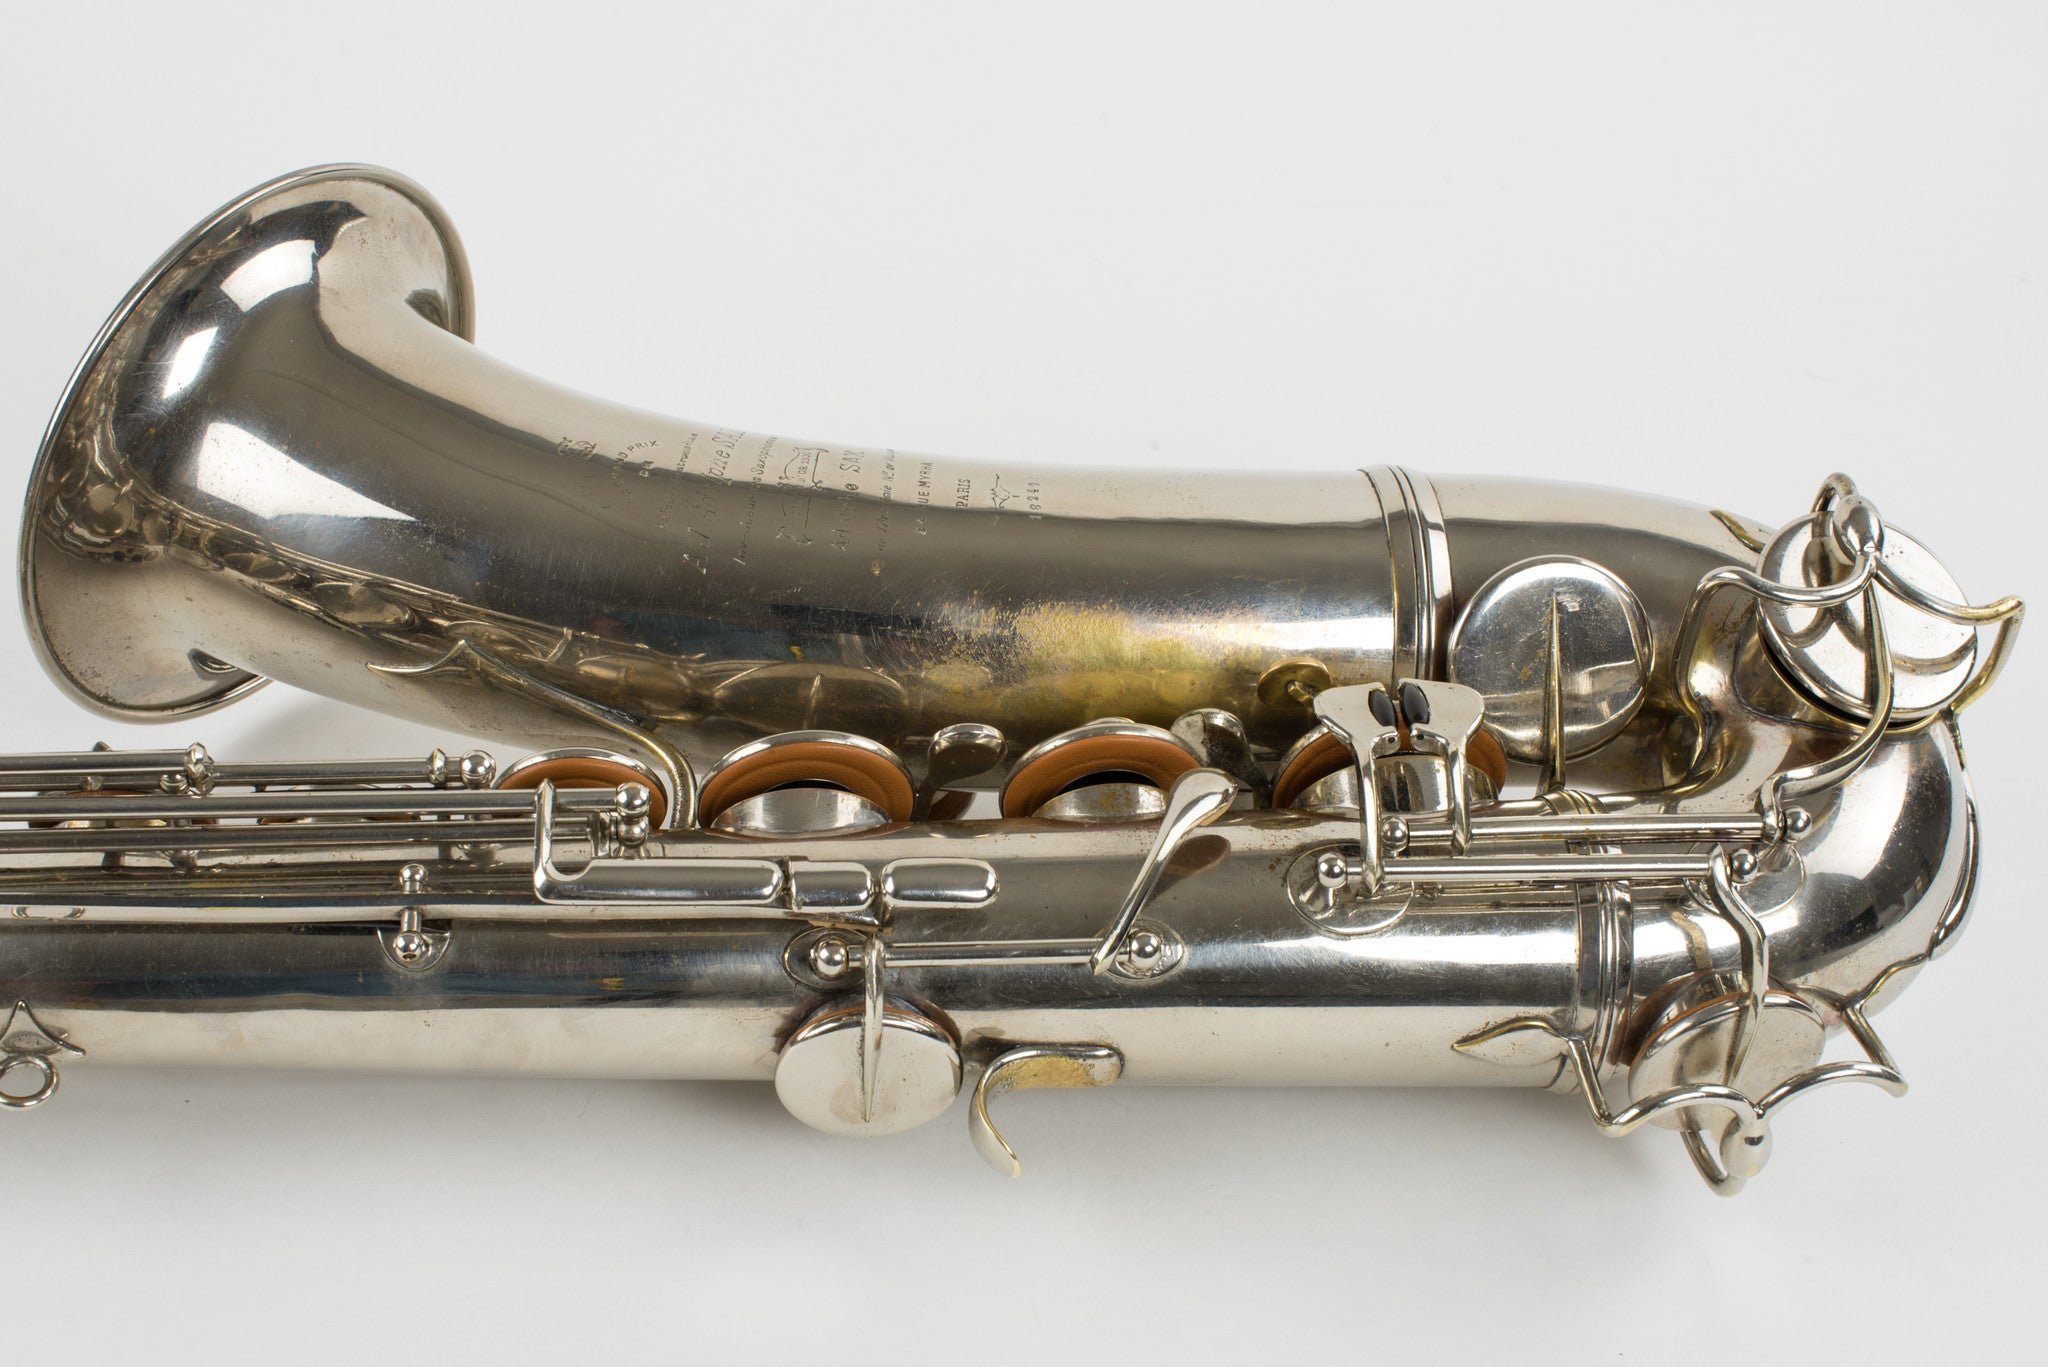 1910 Adolphe Sax Tenor Saxophone Fully Restored